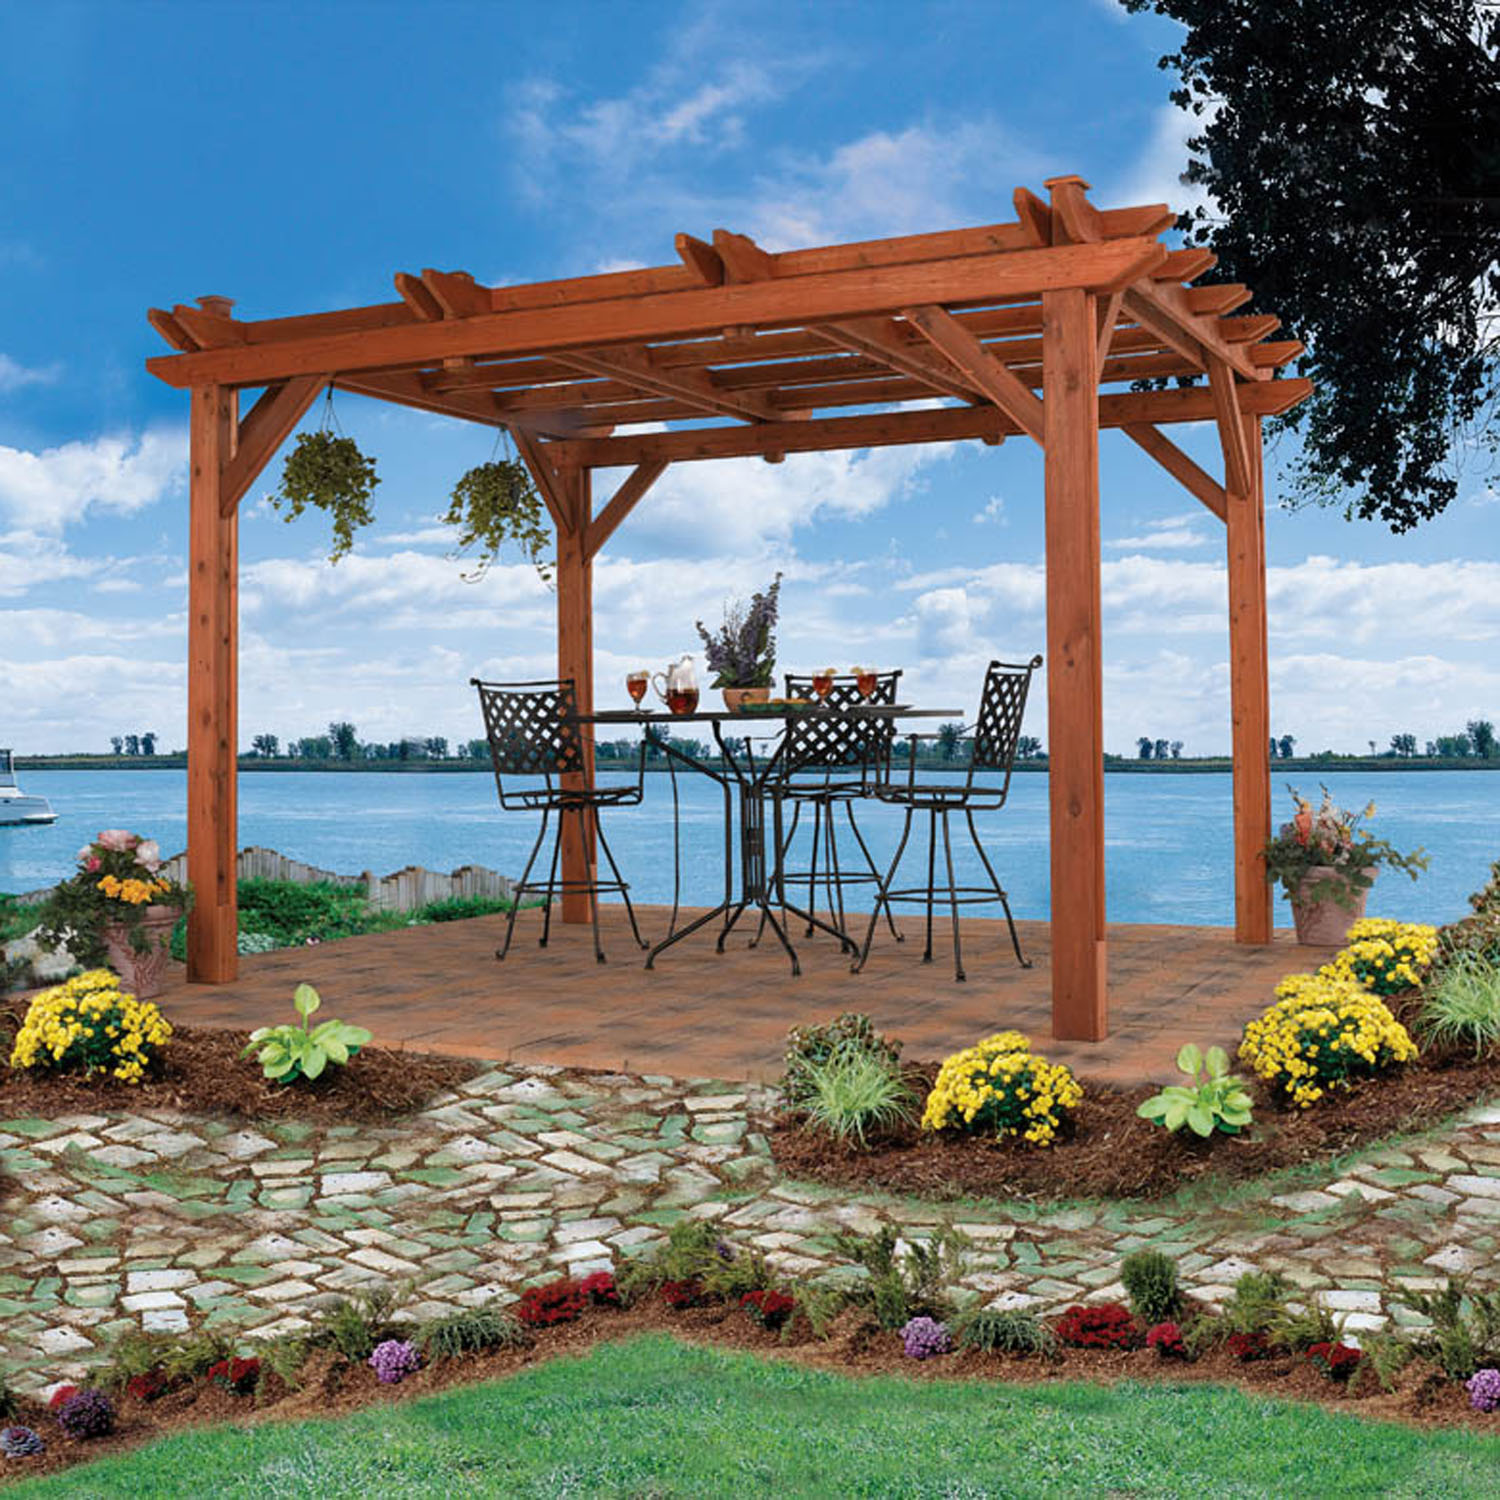 Catalina Pergola 10x12 - Heartland Industries